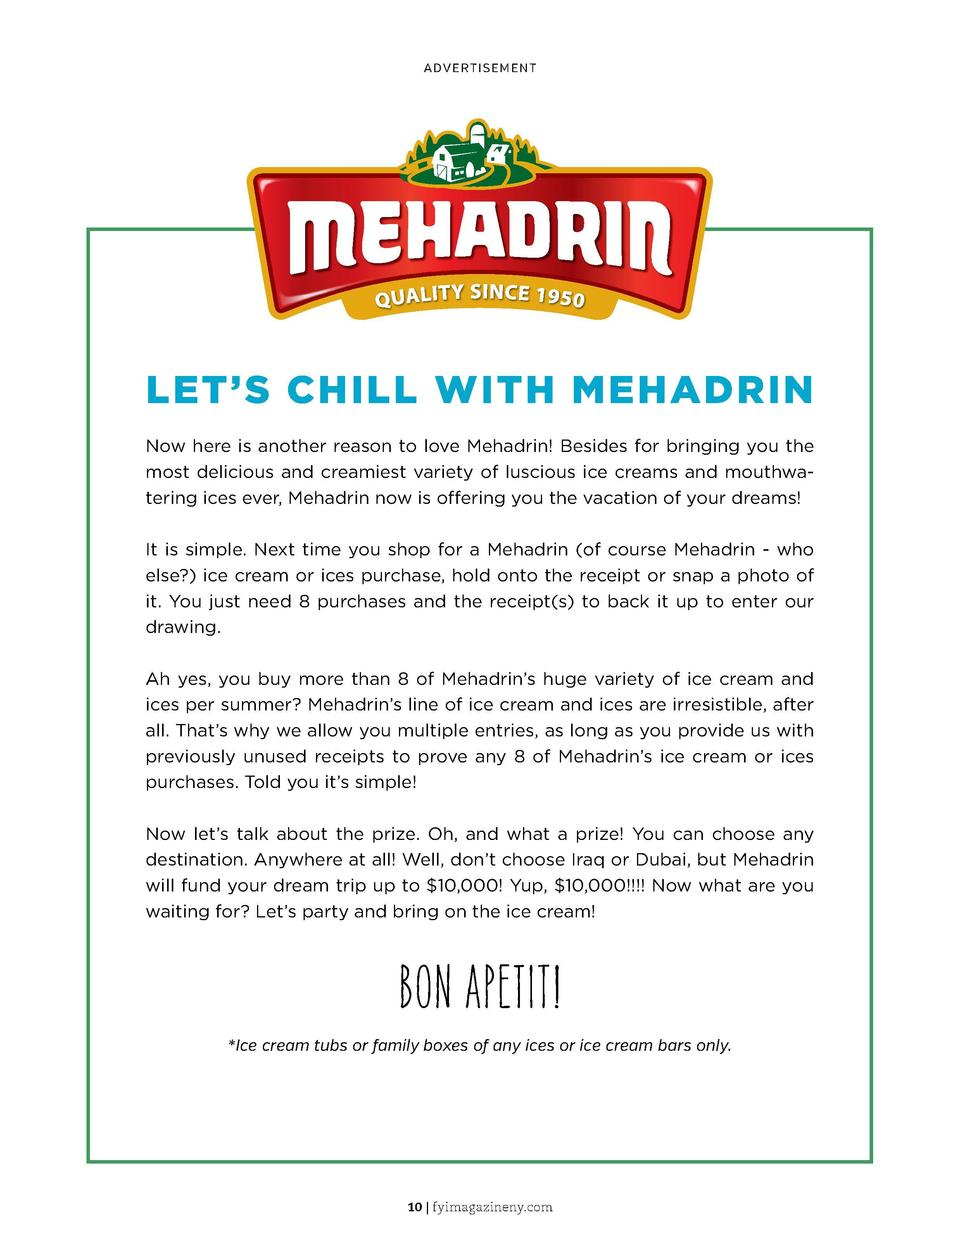 ADVERTISEMENT  you gotta know pg  24  LET   S CHILL WITH MEHADRIN  Outdoor Toys for Under  500  Now here is another reason...